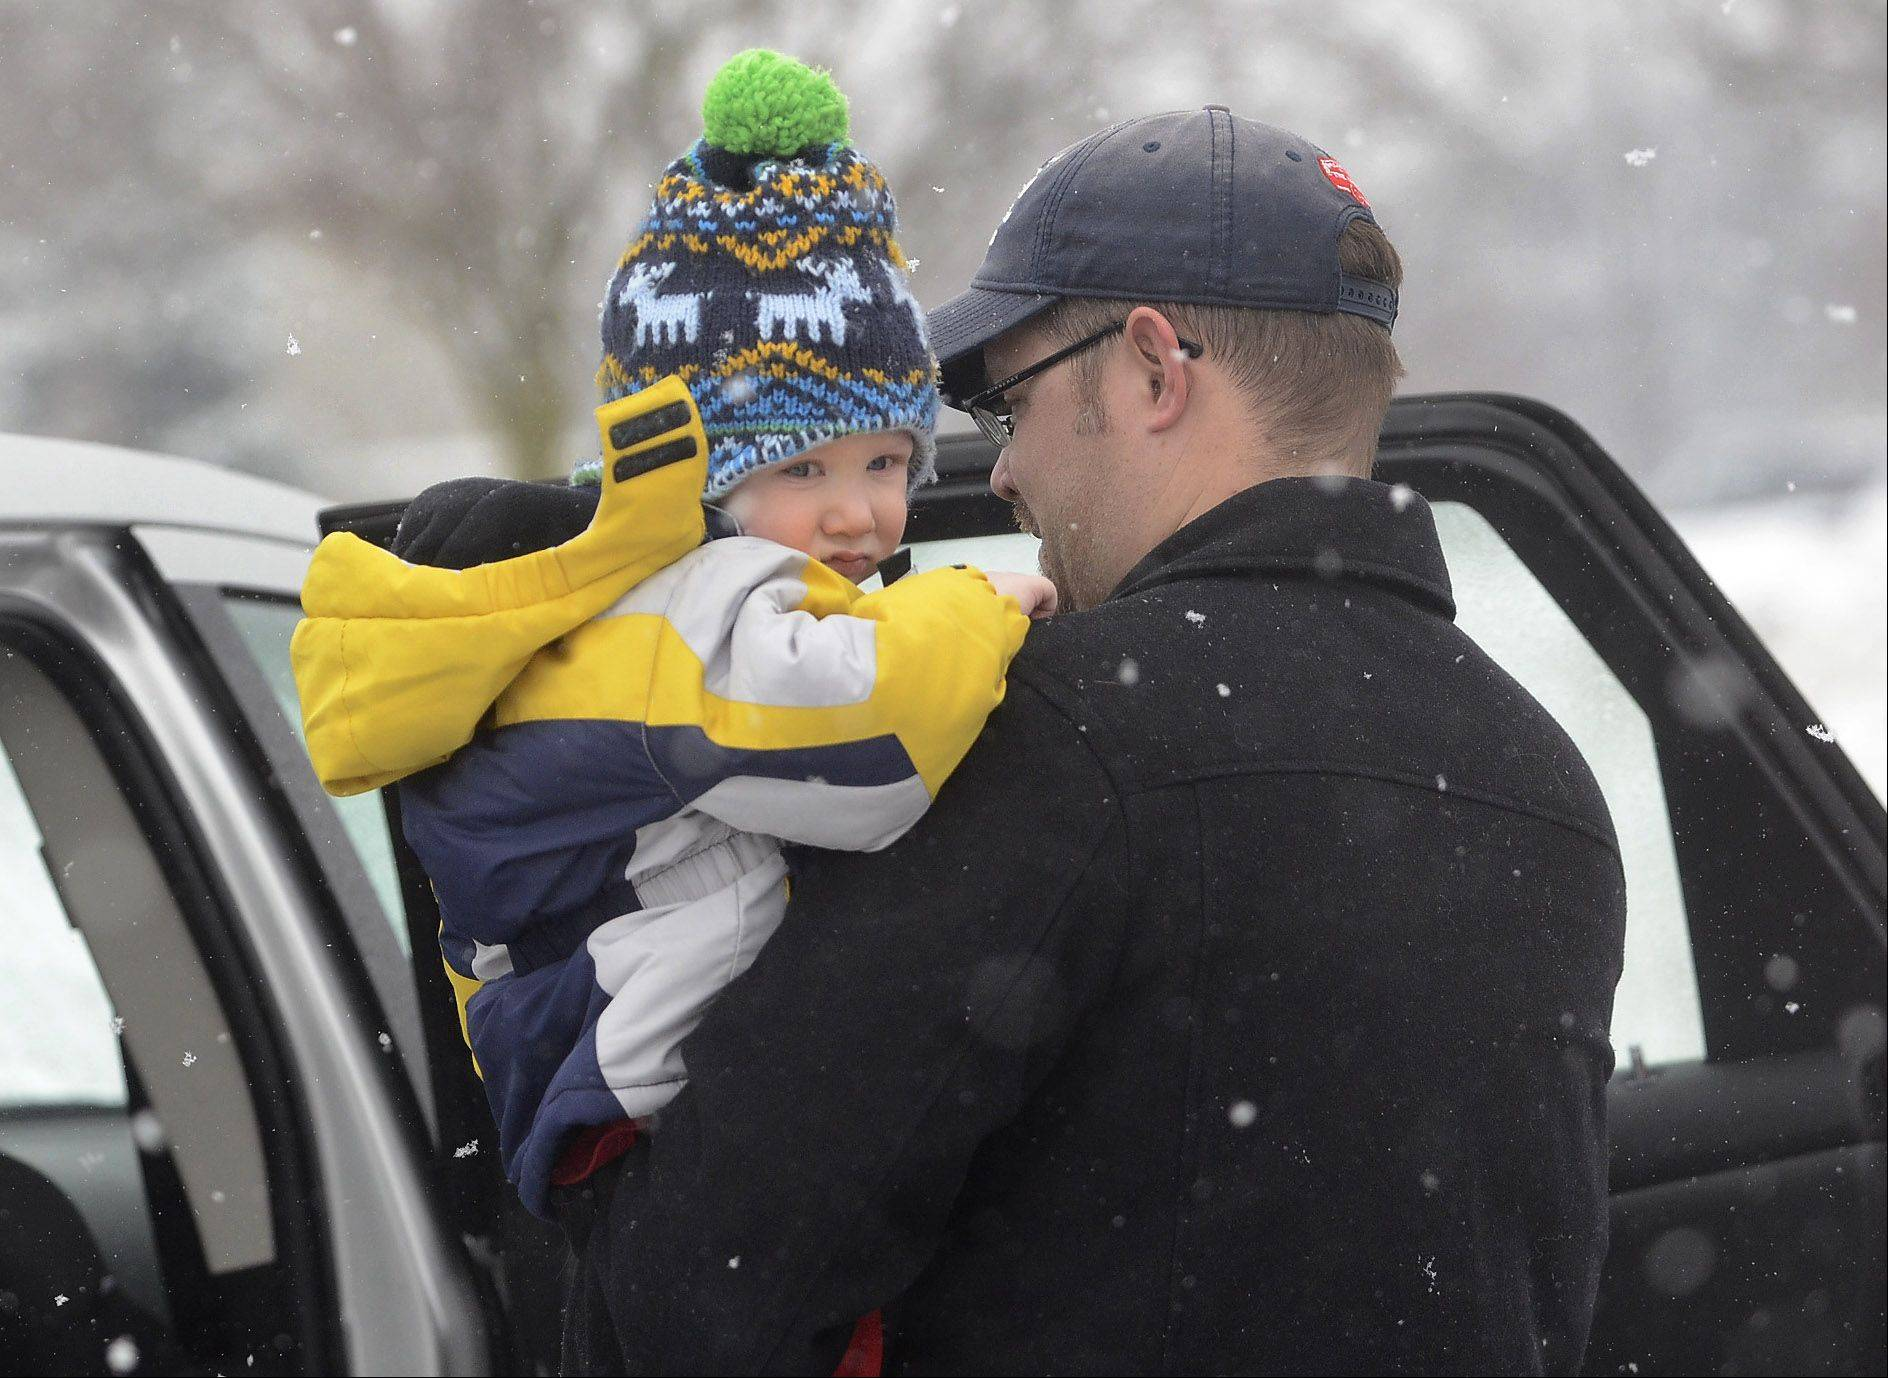 Jon Feucht of Schaumburg packs his son Zander into his vehicle after the 2-year-old got his hair cut Saturday.